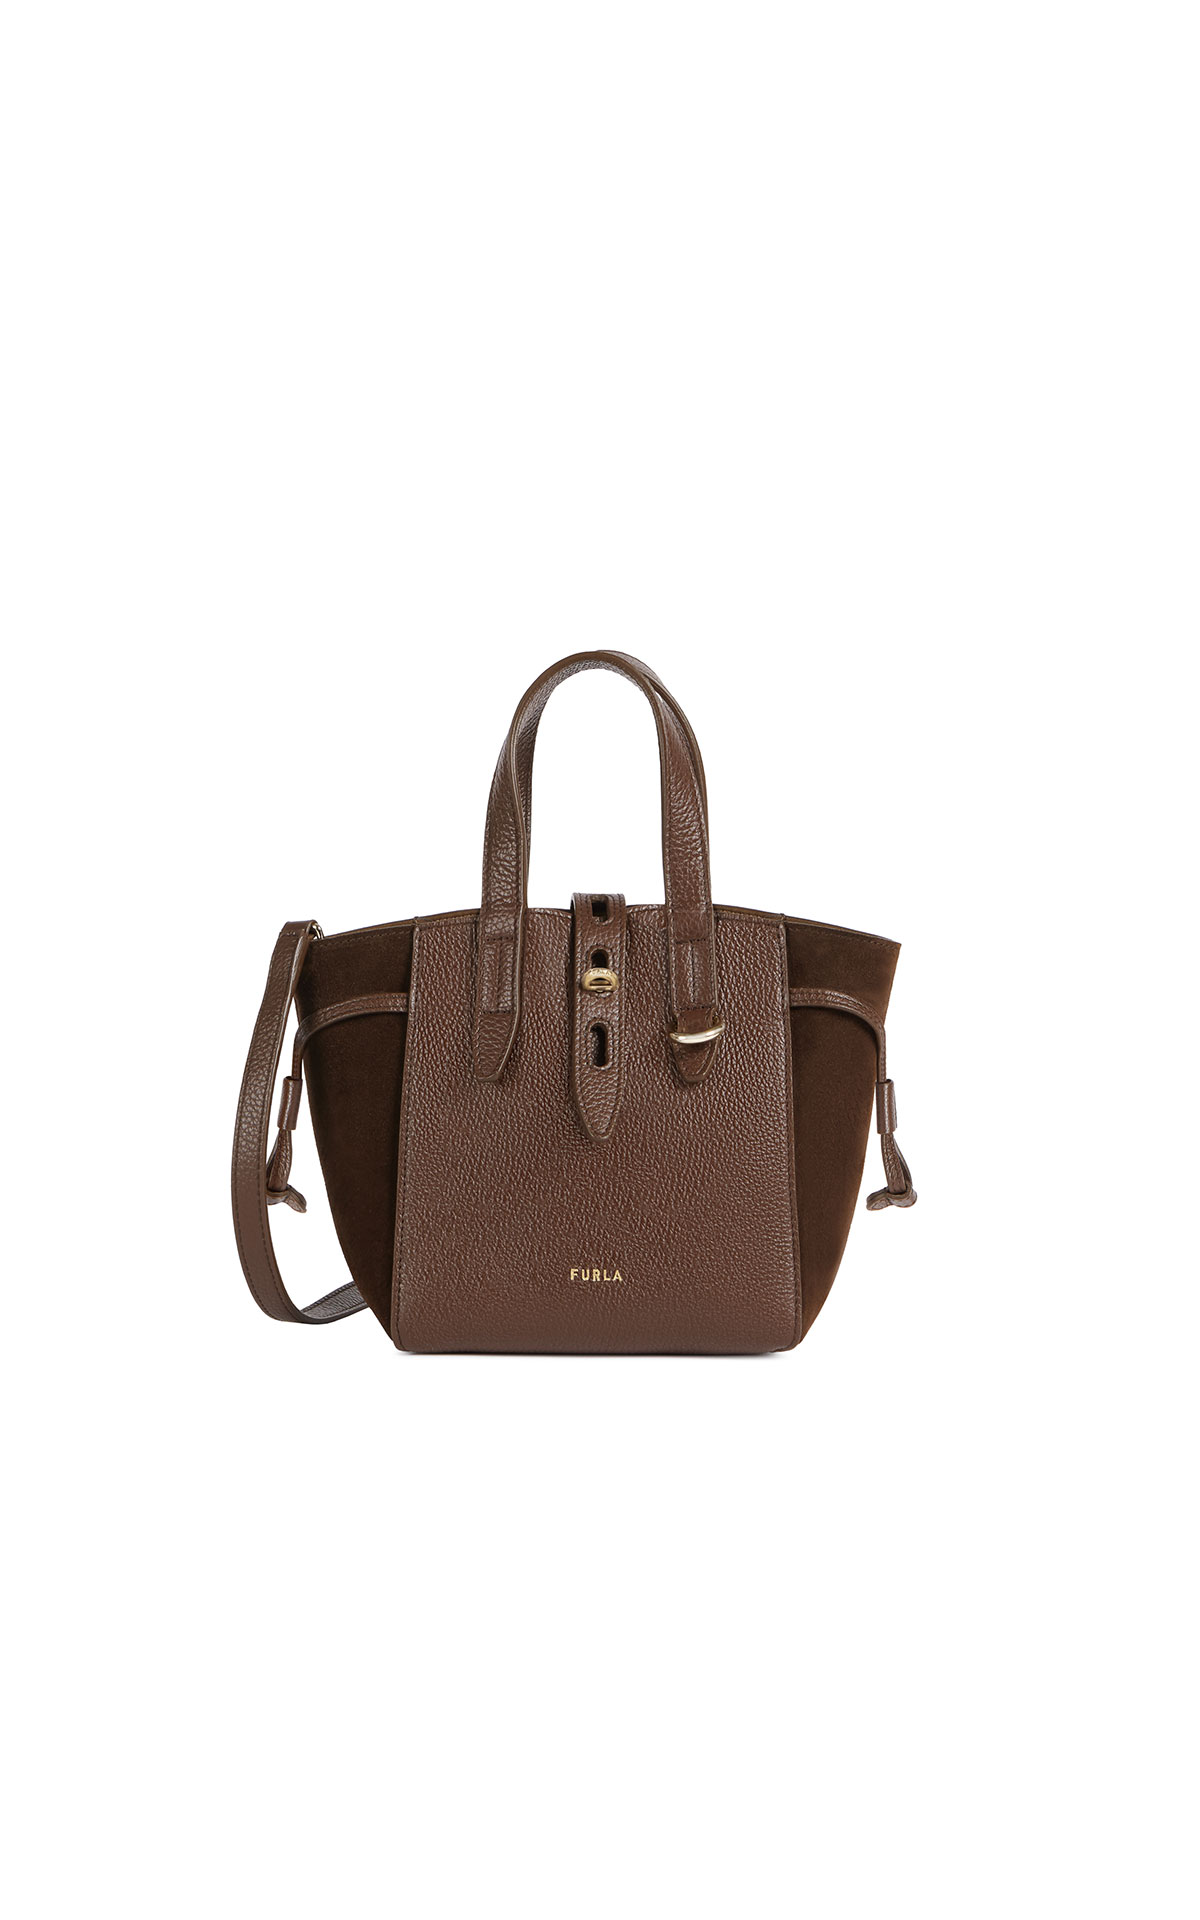 Furla net mini tote at the Bicester Village Shopping Collection